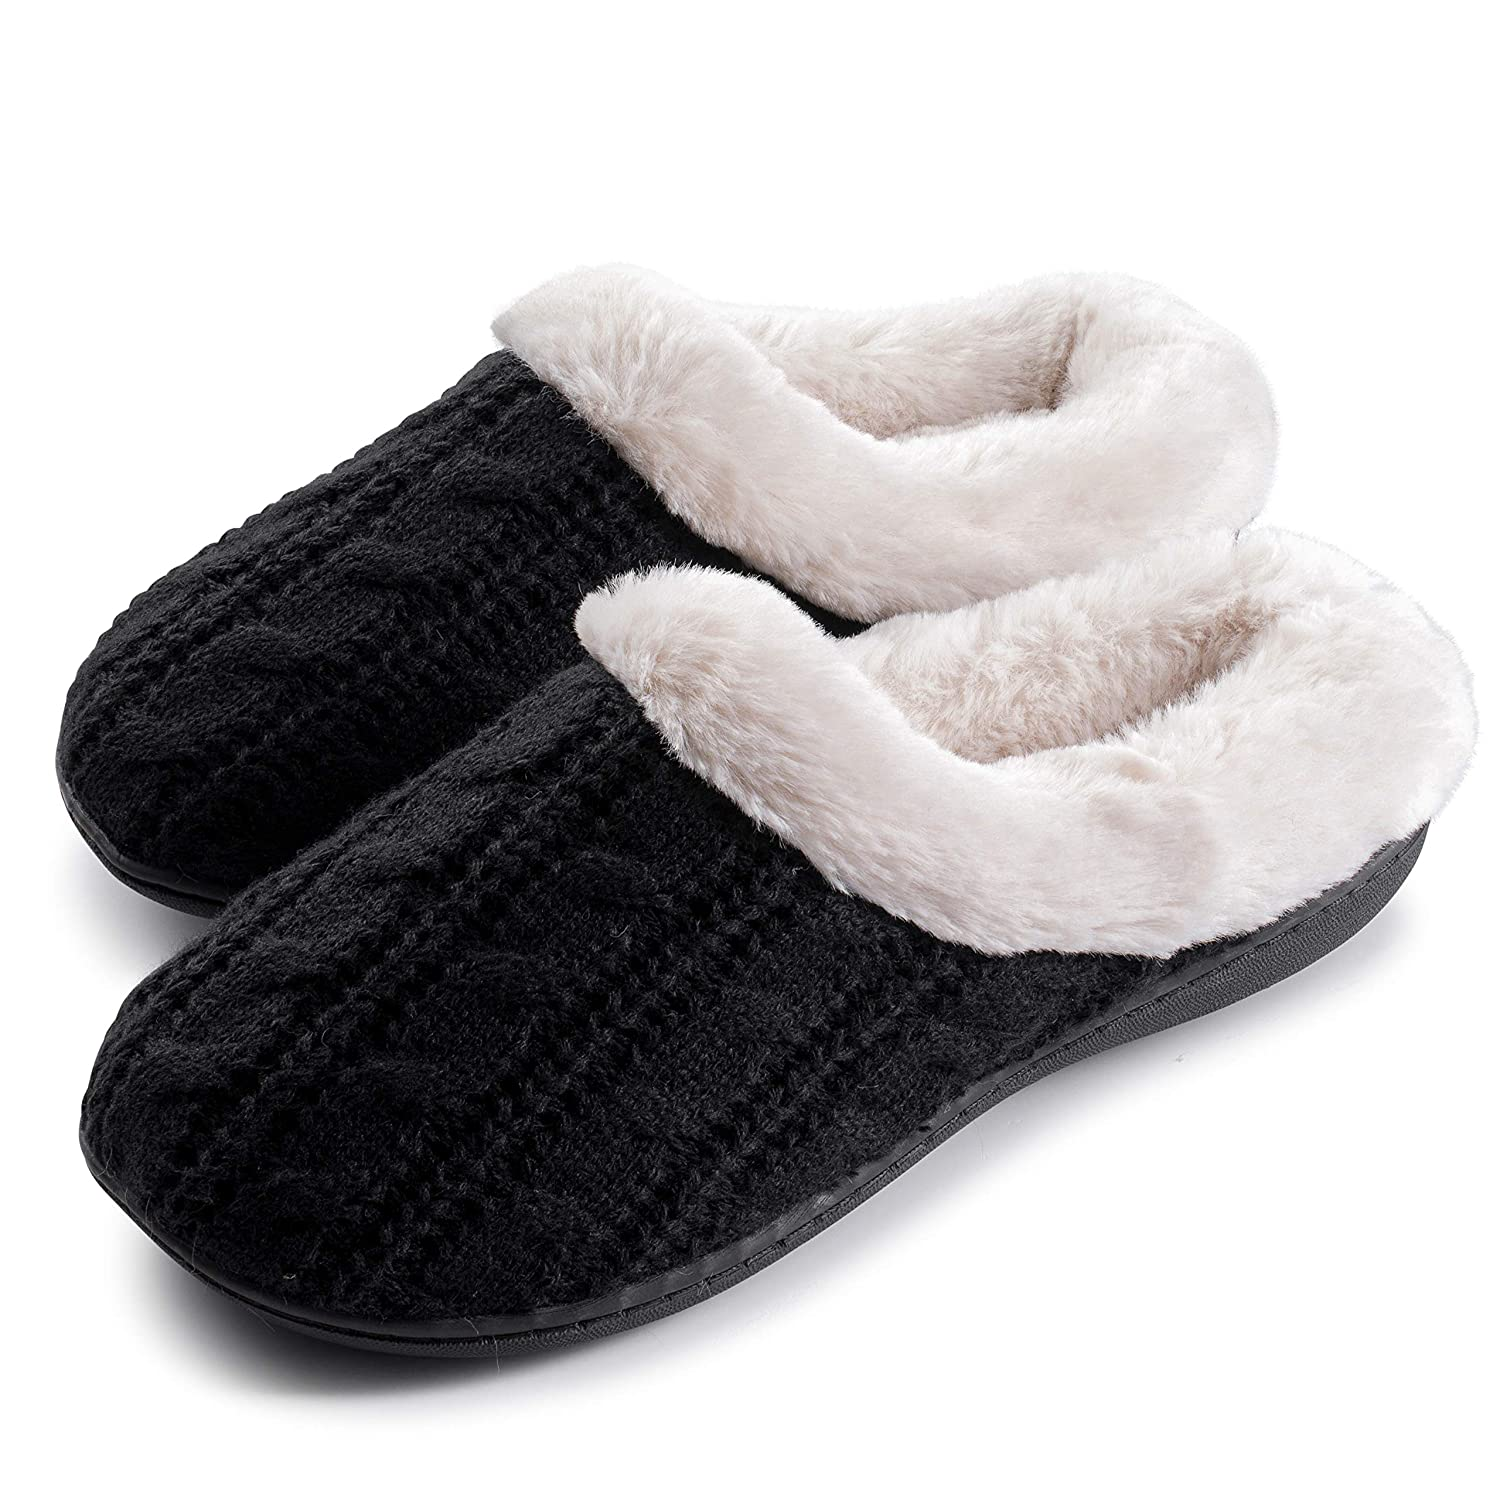 d314dc991da Roxoni Women's Cabled Knit Sweater Clog Winter Bedroom Slippers Super Cozy  and Comfort